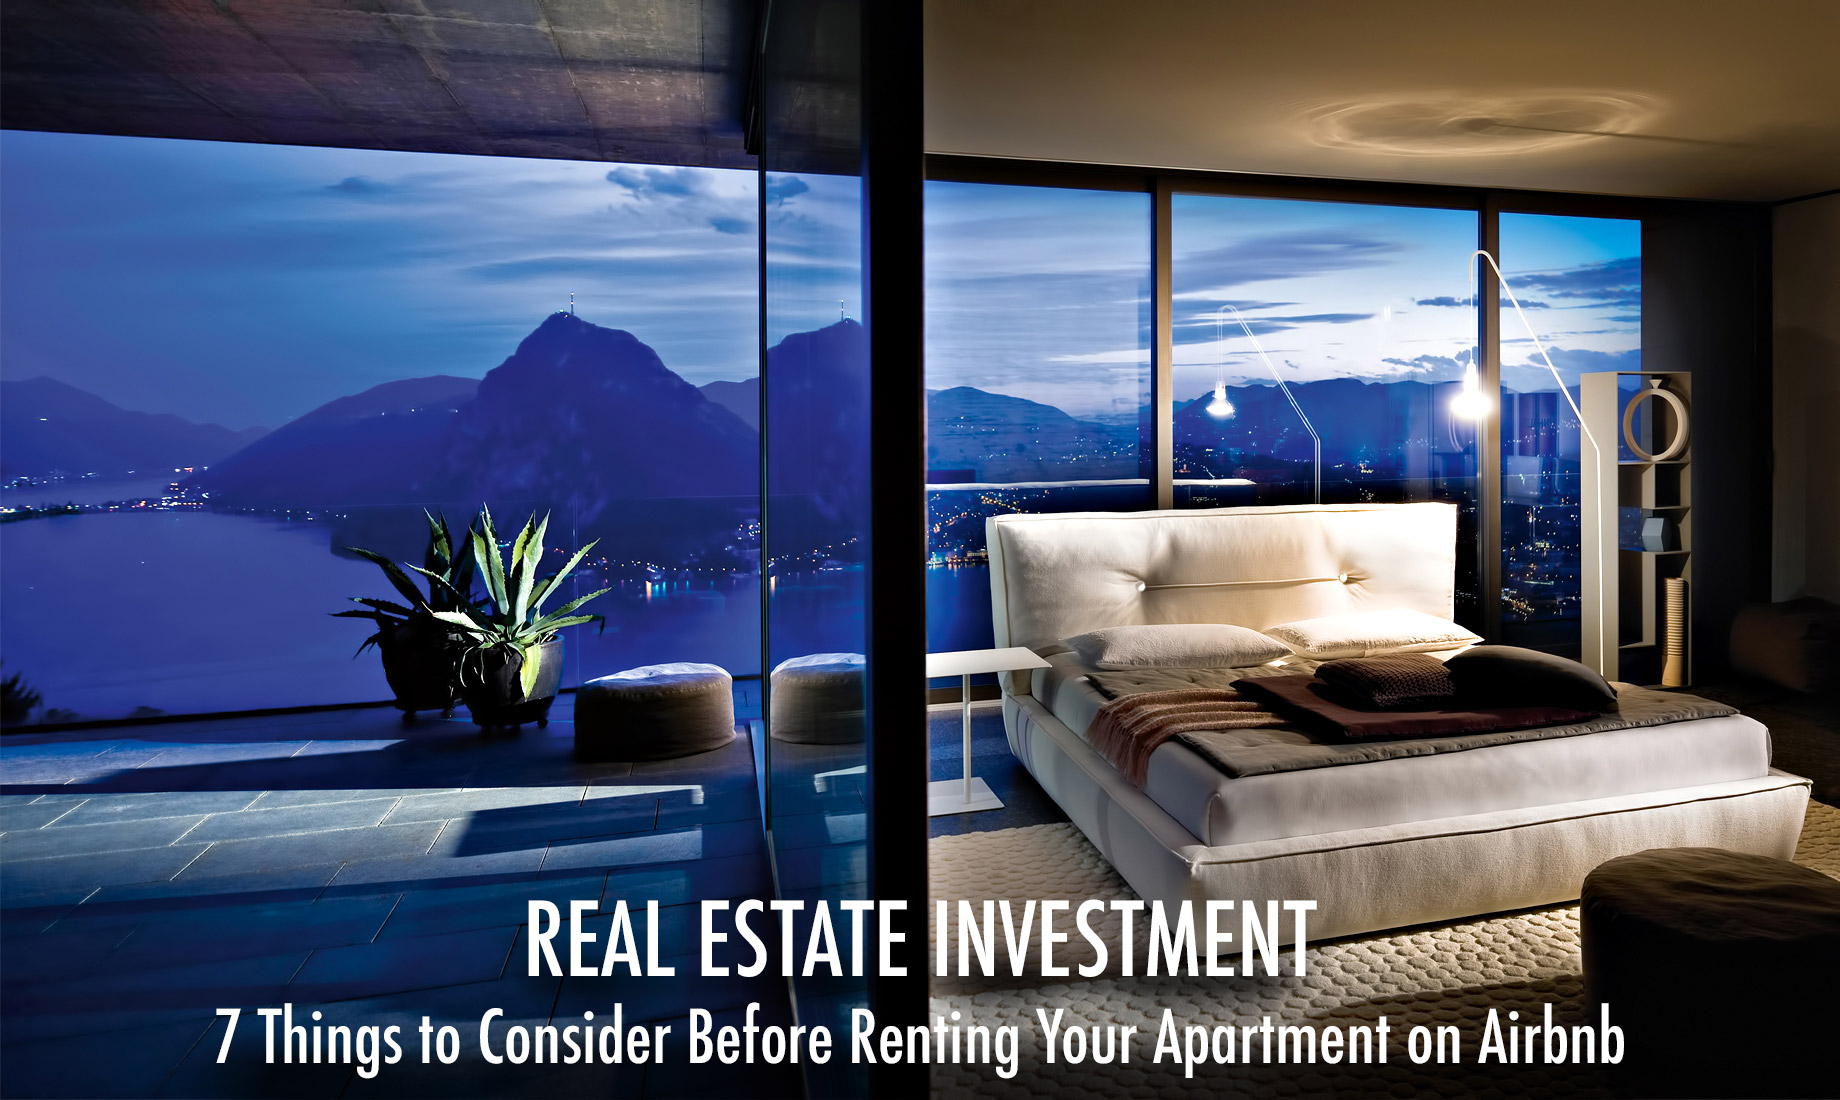 Real Estate Investment - 7 Things to Consider Before Renting Your Apartment on Airbnb